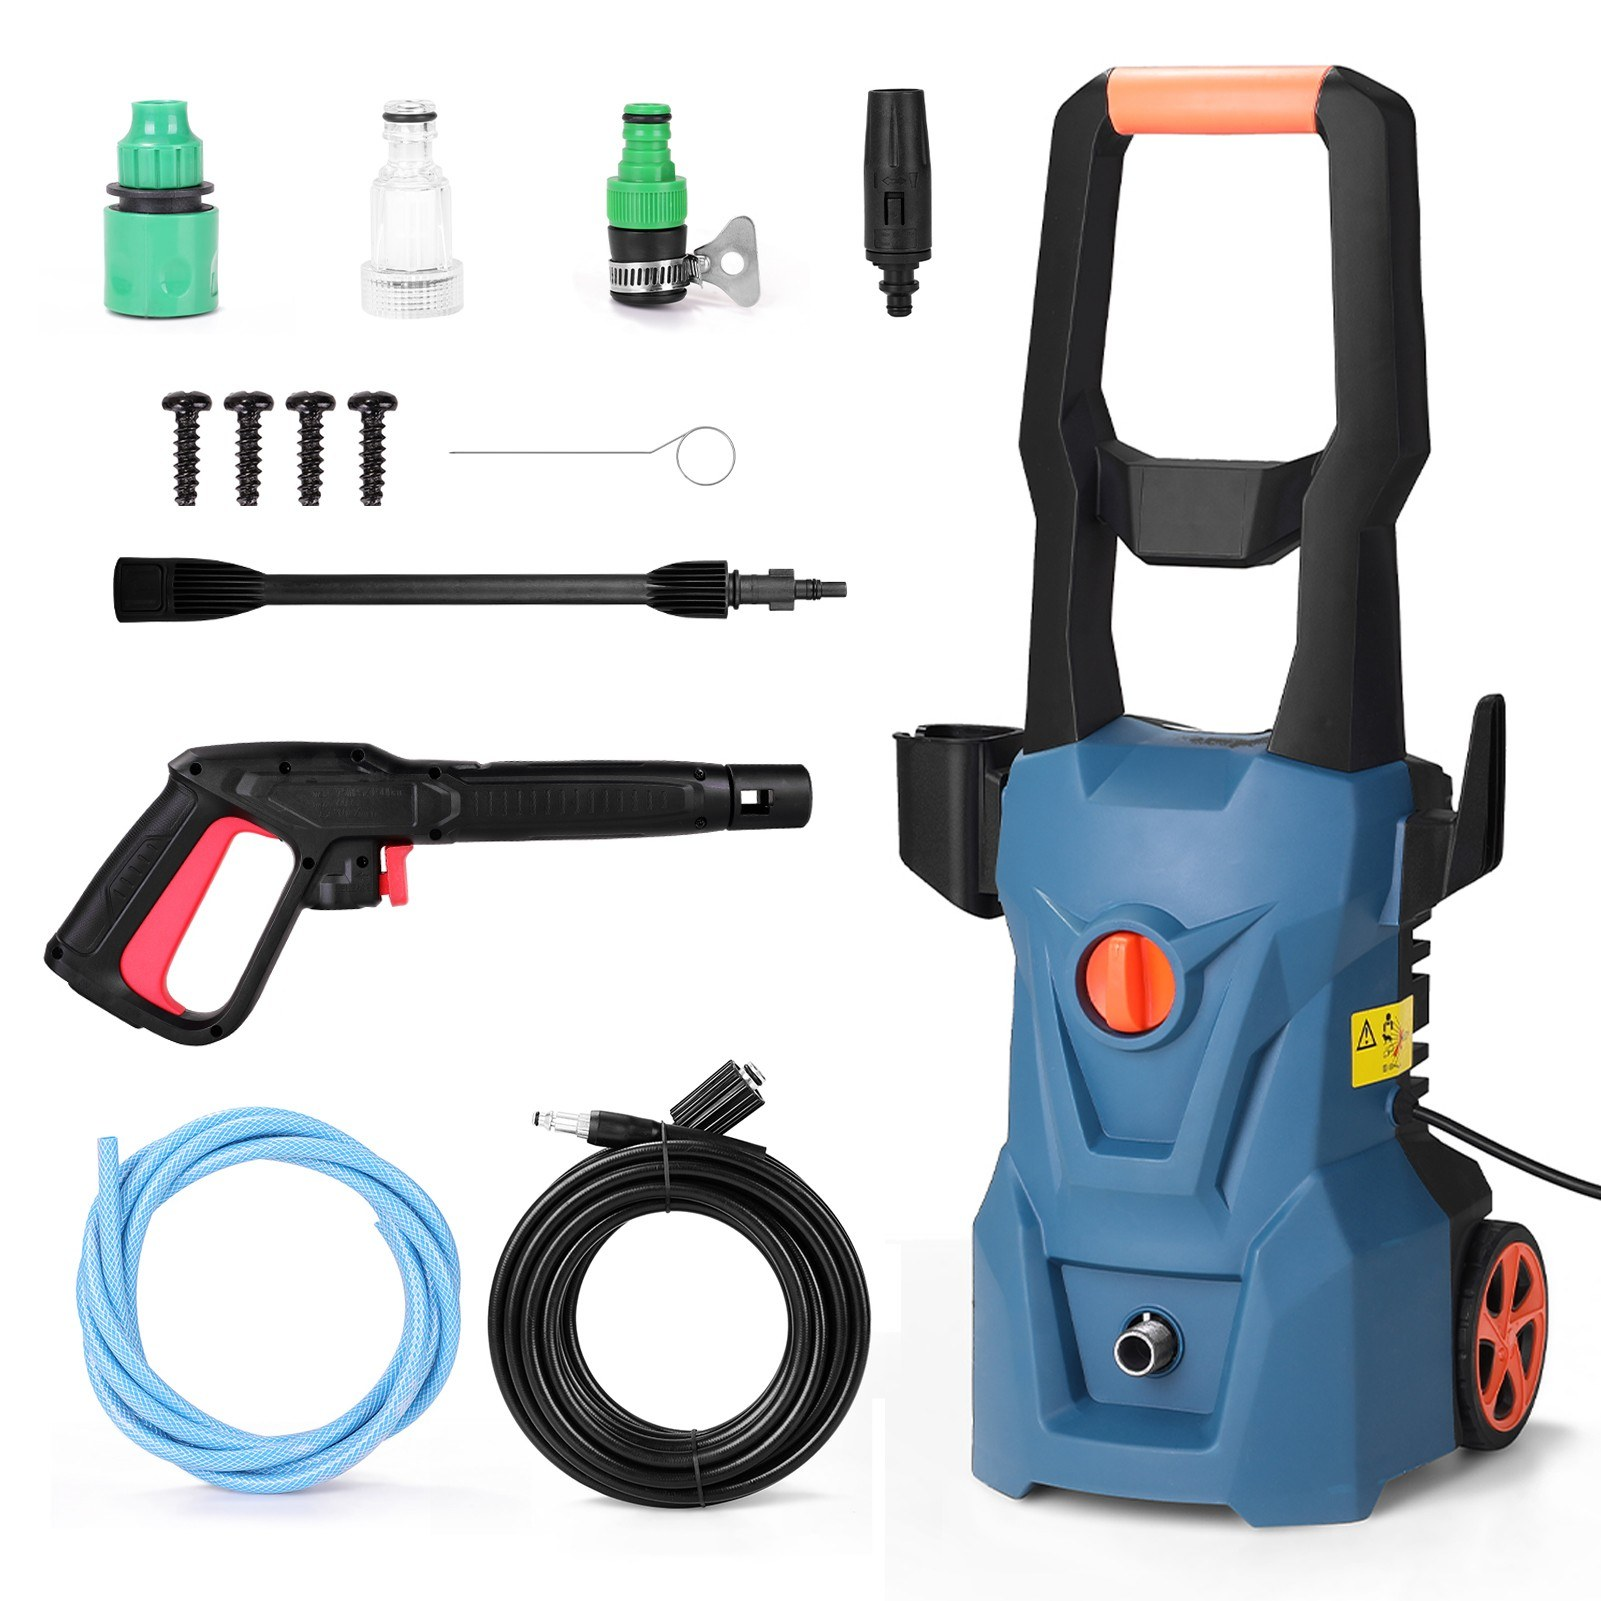 Tomtop - 46% OFF High Pressure Cleaning Machine, Free Shipping $133.99